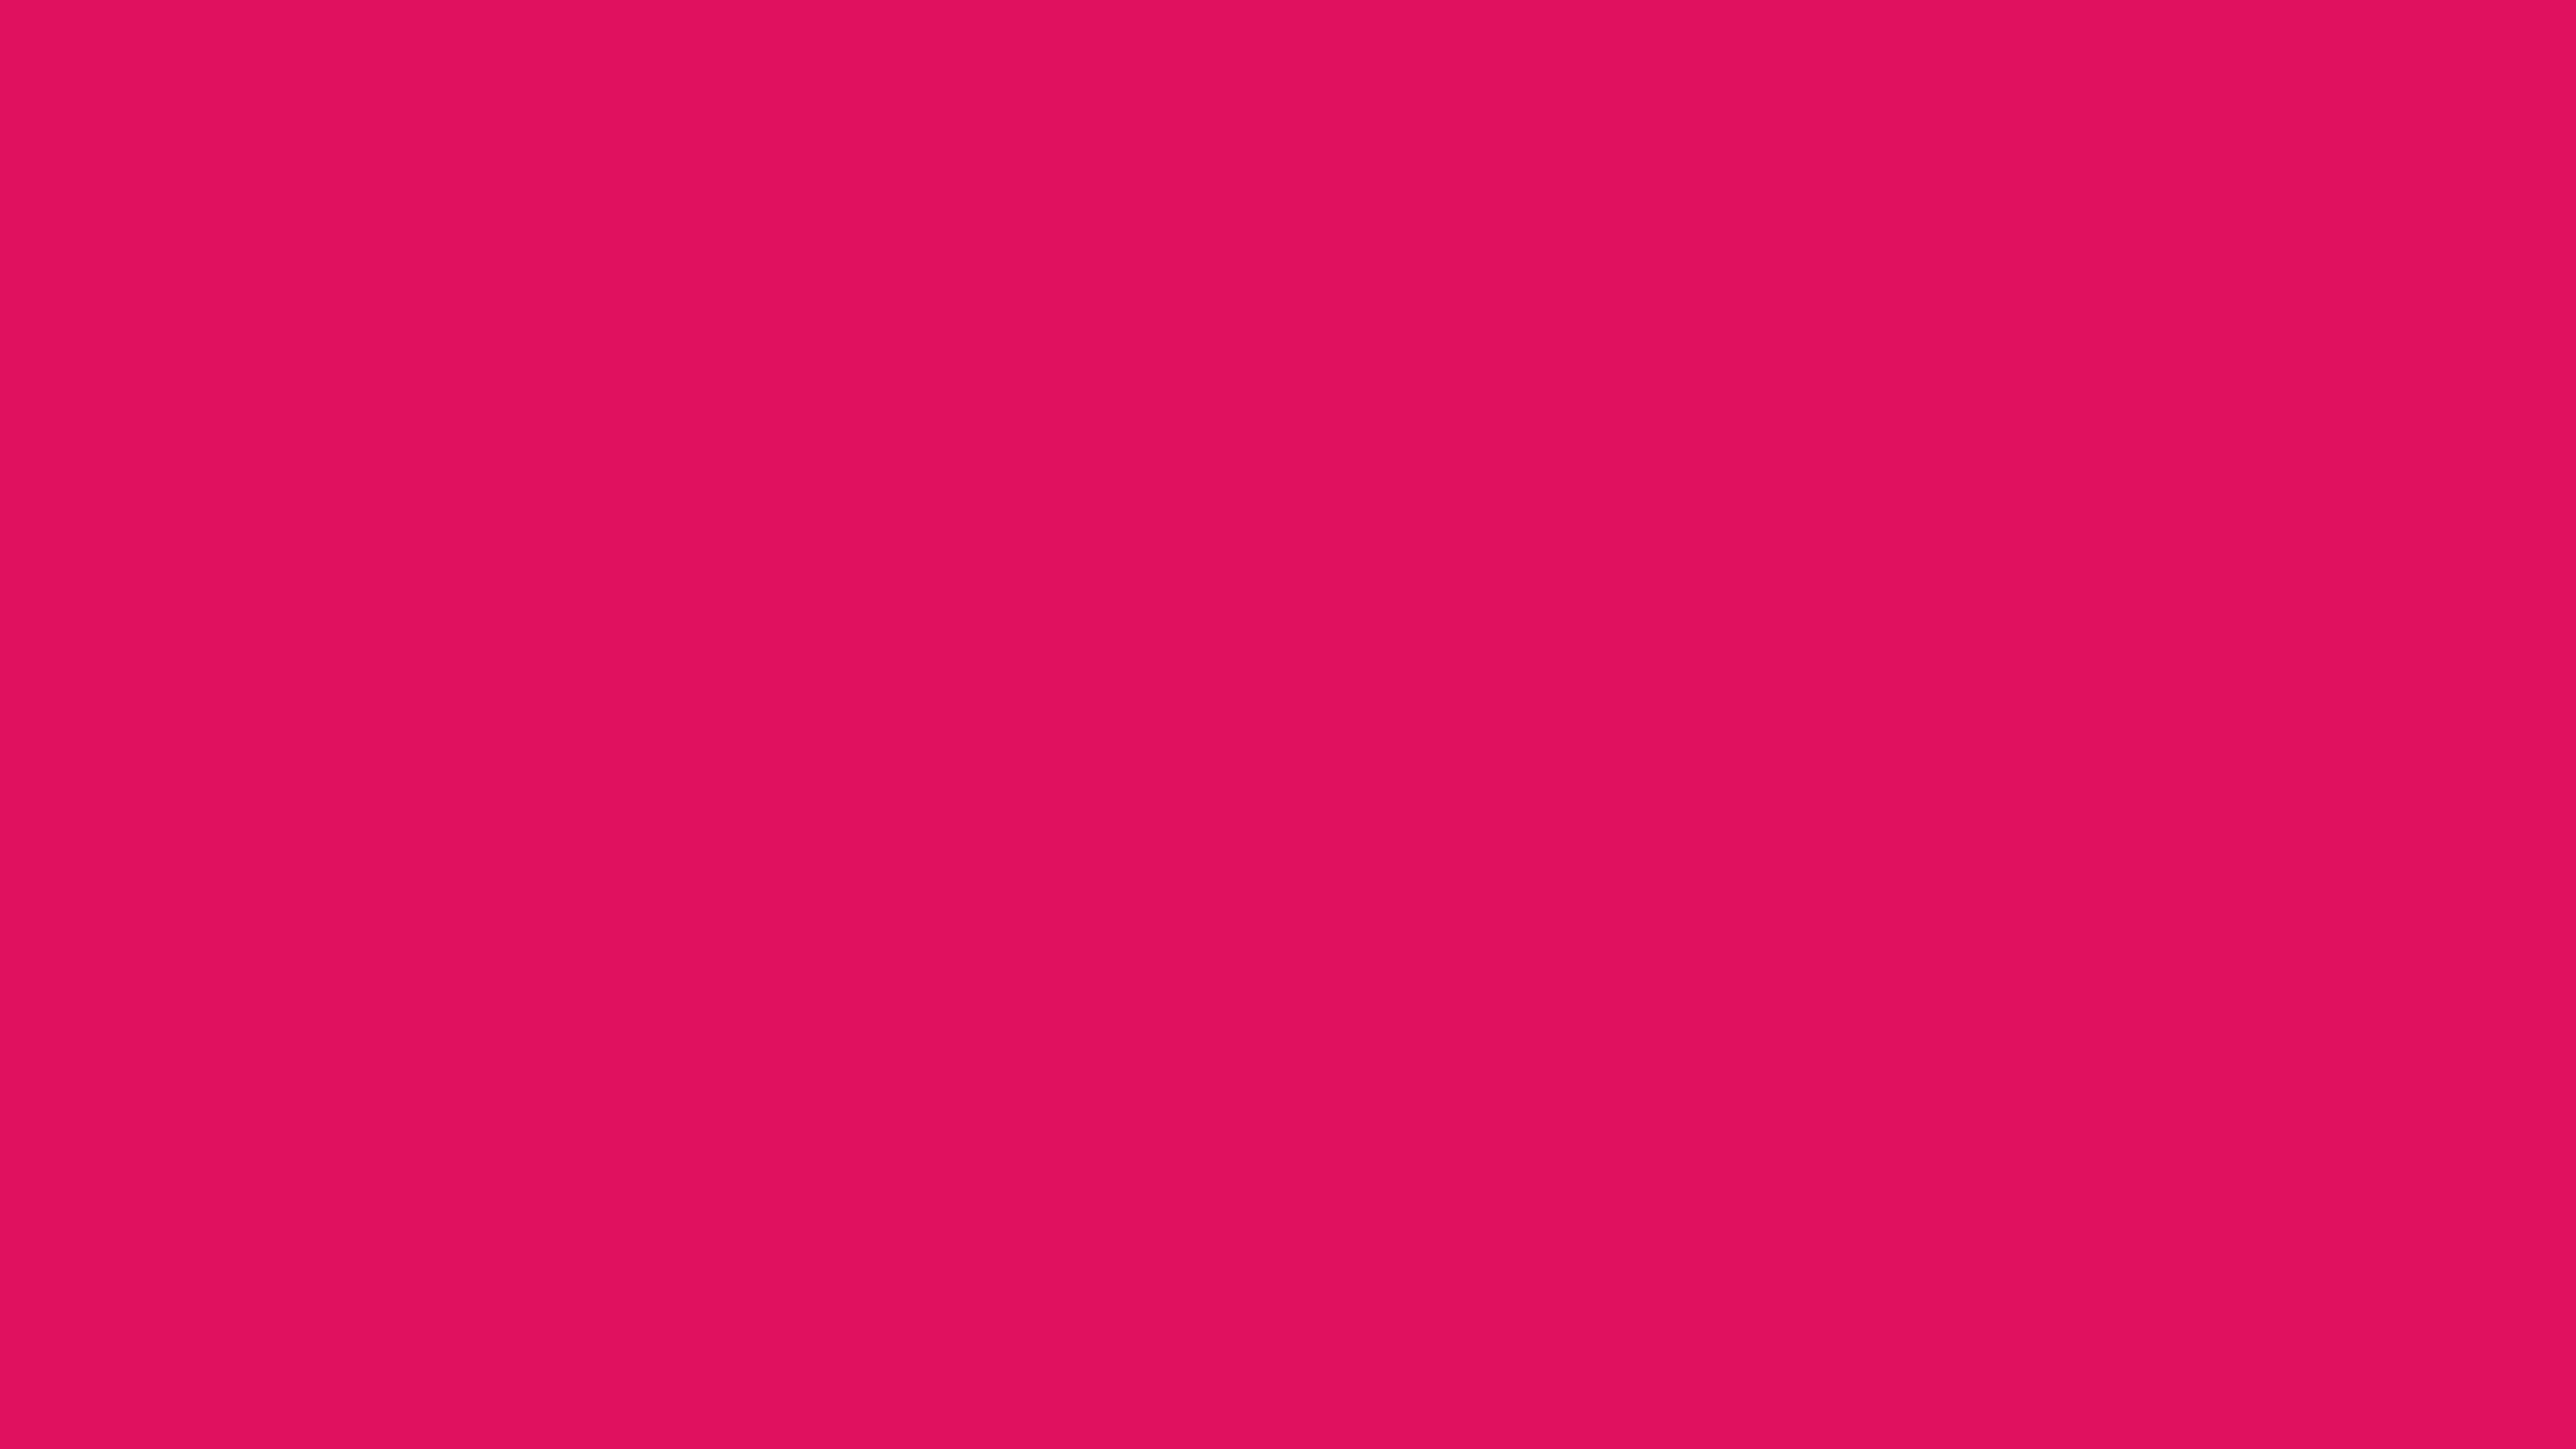 3840x2160 Ruby Solid Color Background